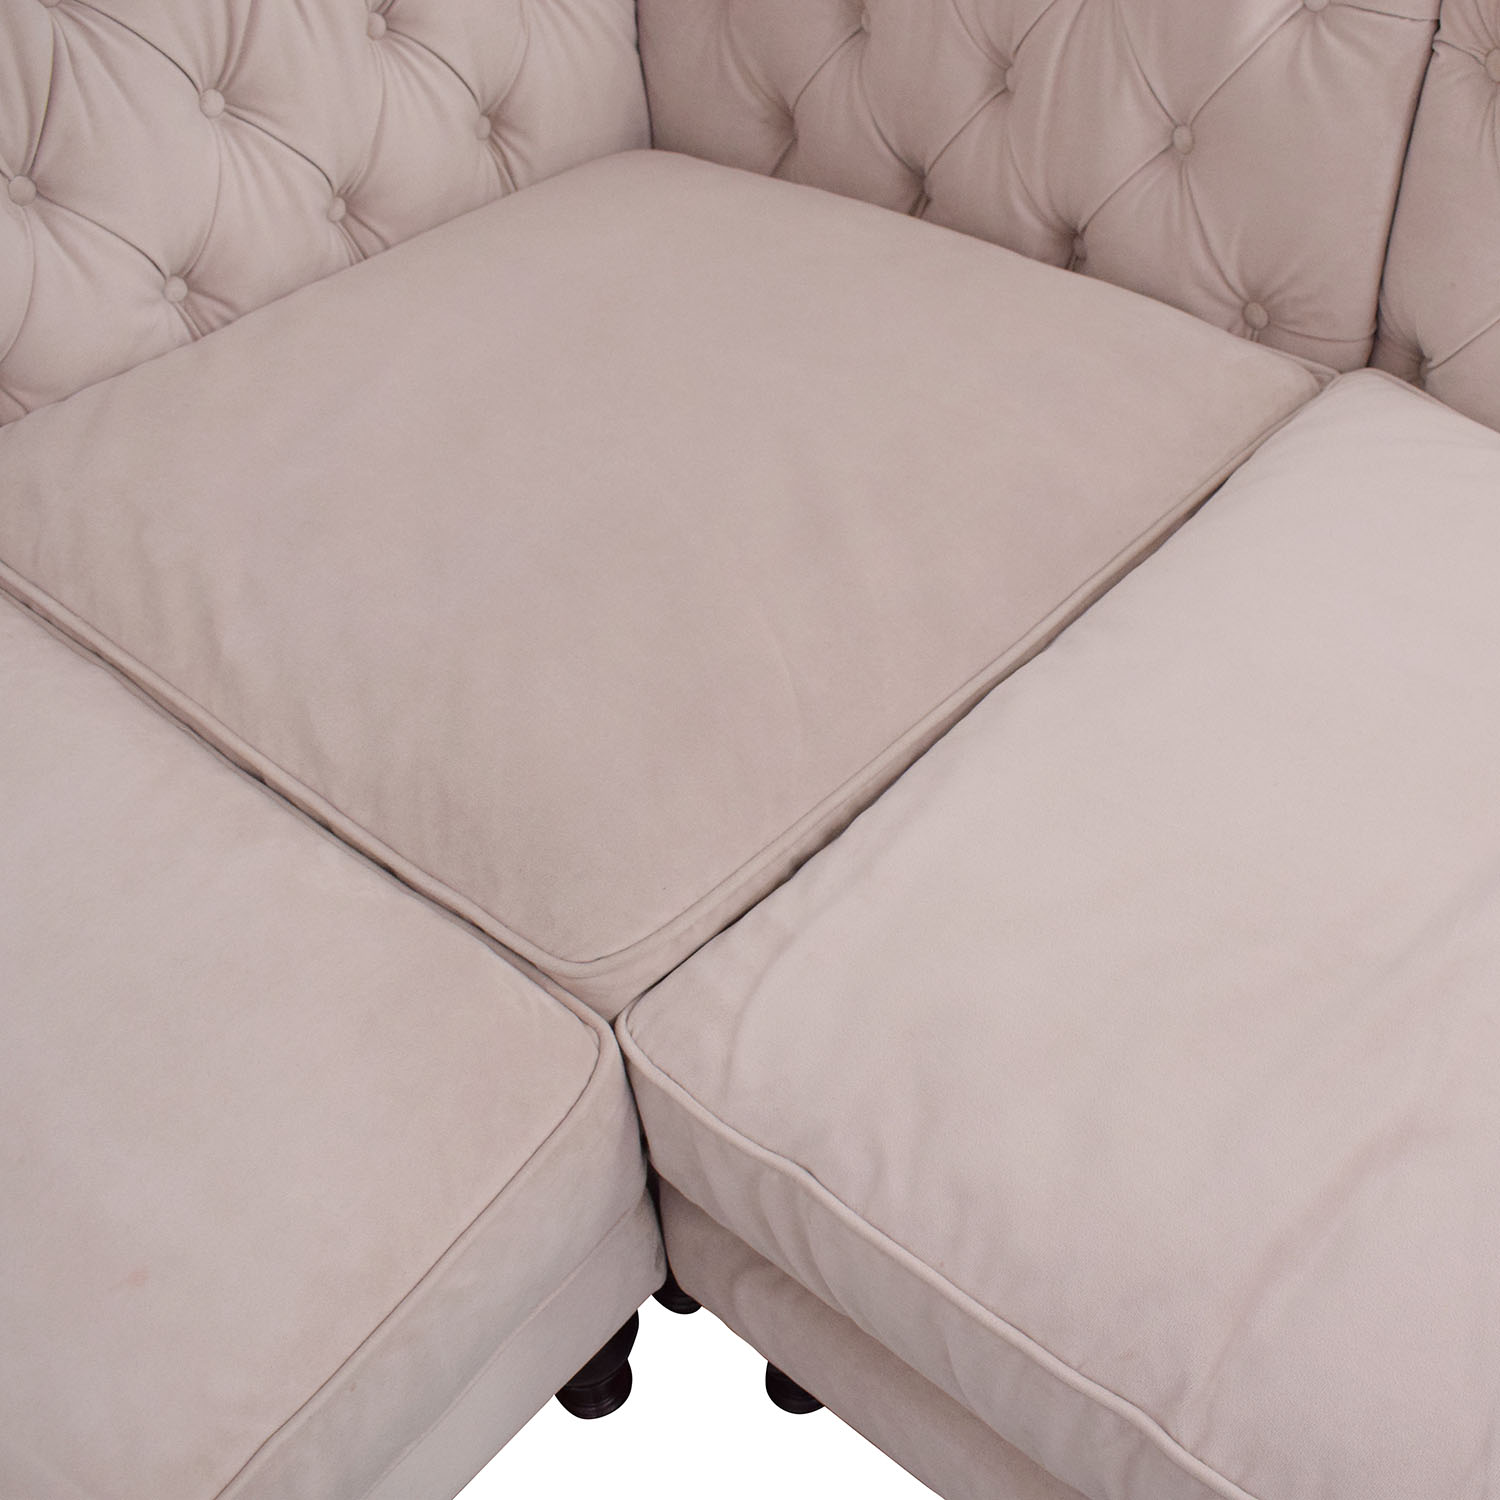 Z Gallerie Z Gallerie Roberto Sectional Sofa second hand